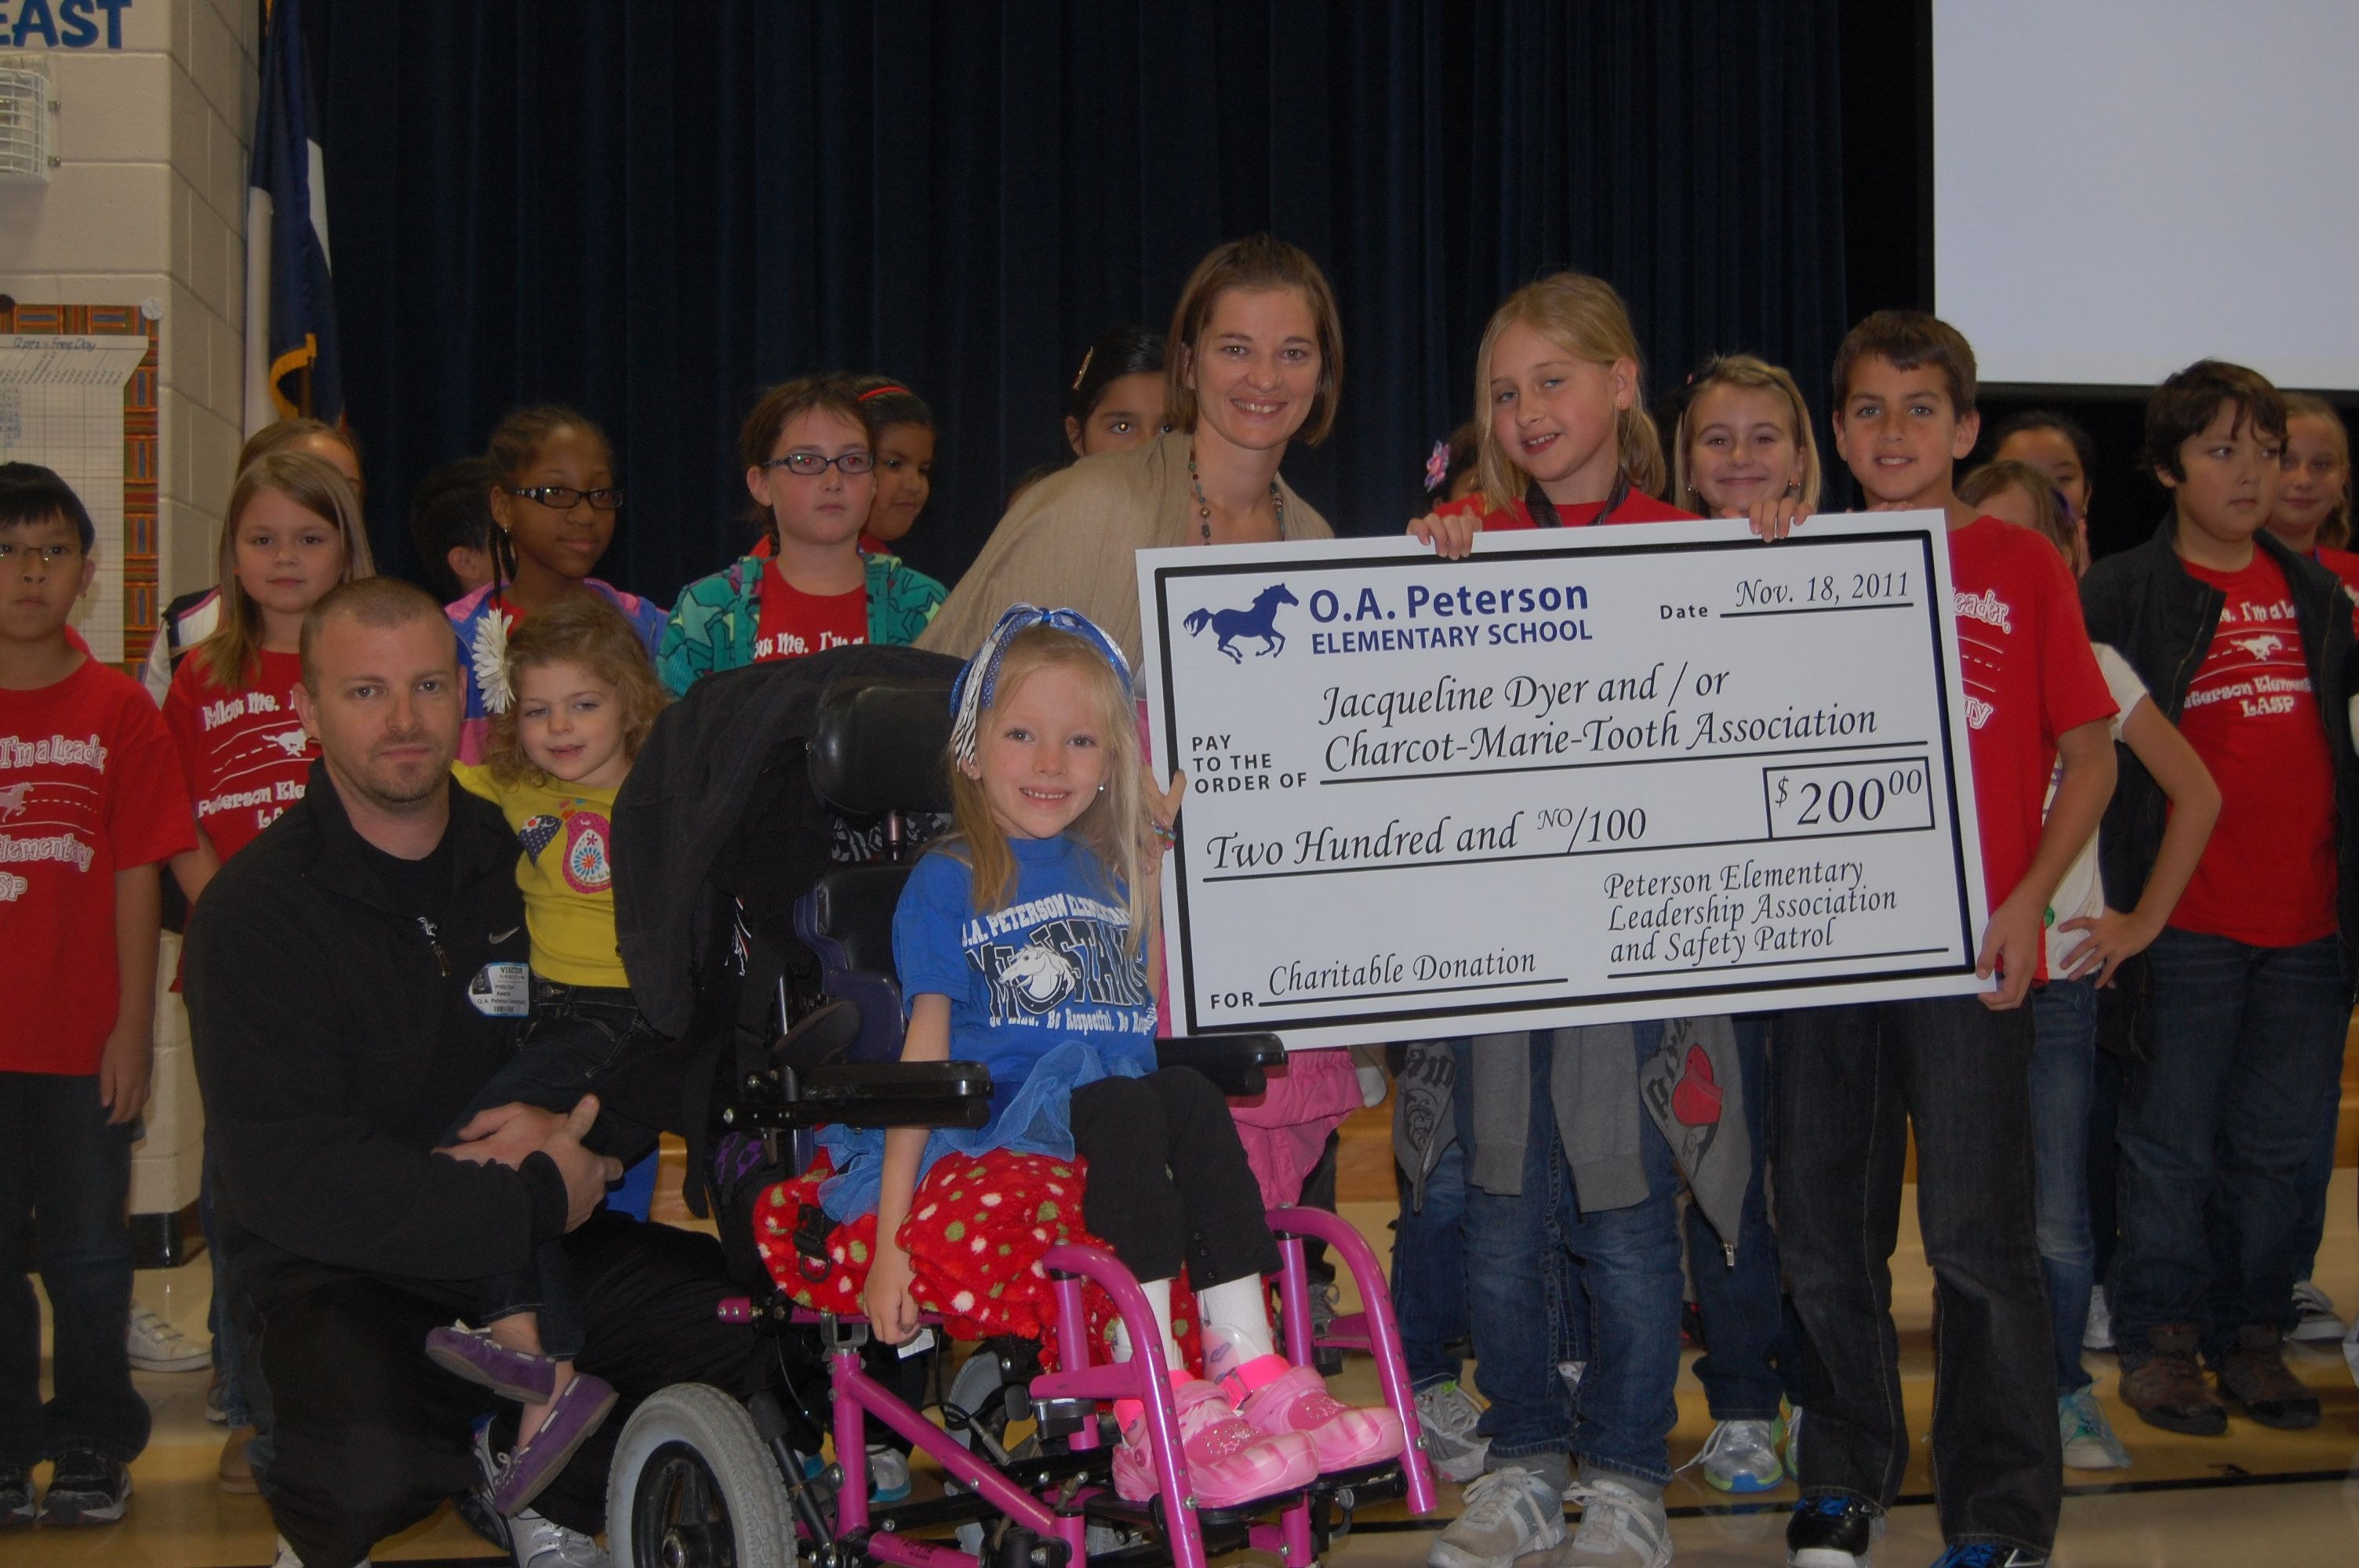 O.A. Peterson Elementary Leadership Association and